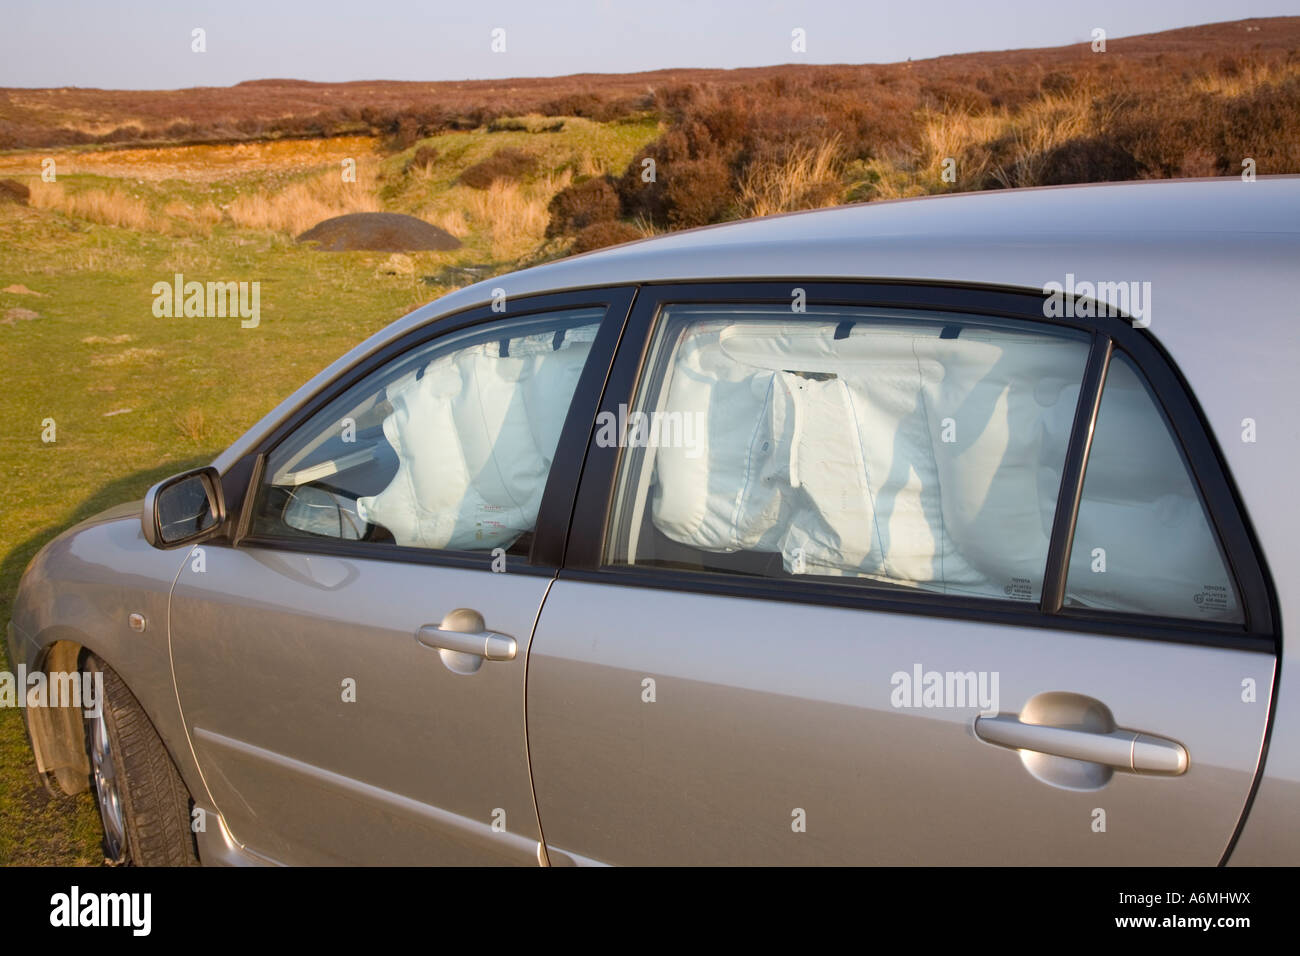 https www alamy com stock photo toyota corolla with near side srs curtain airbag inflated after accident 11609221 html